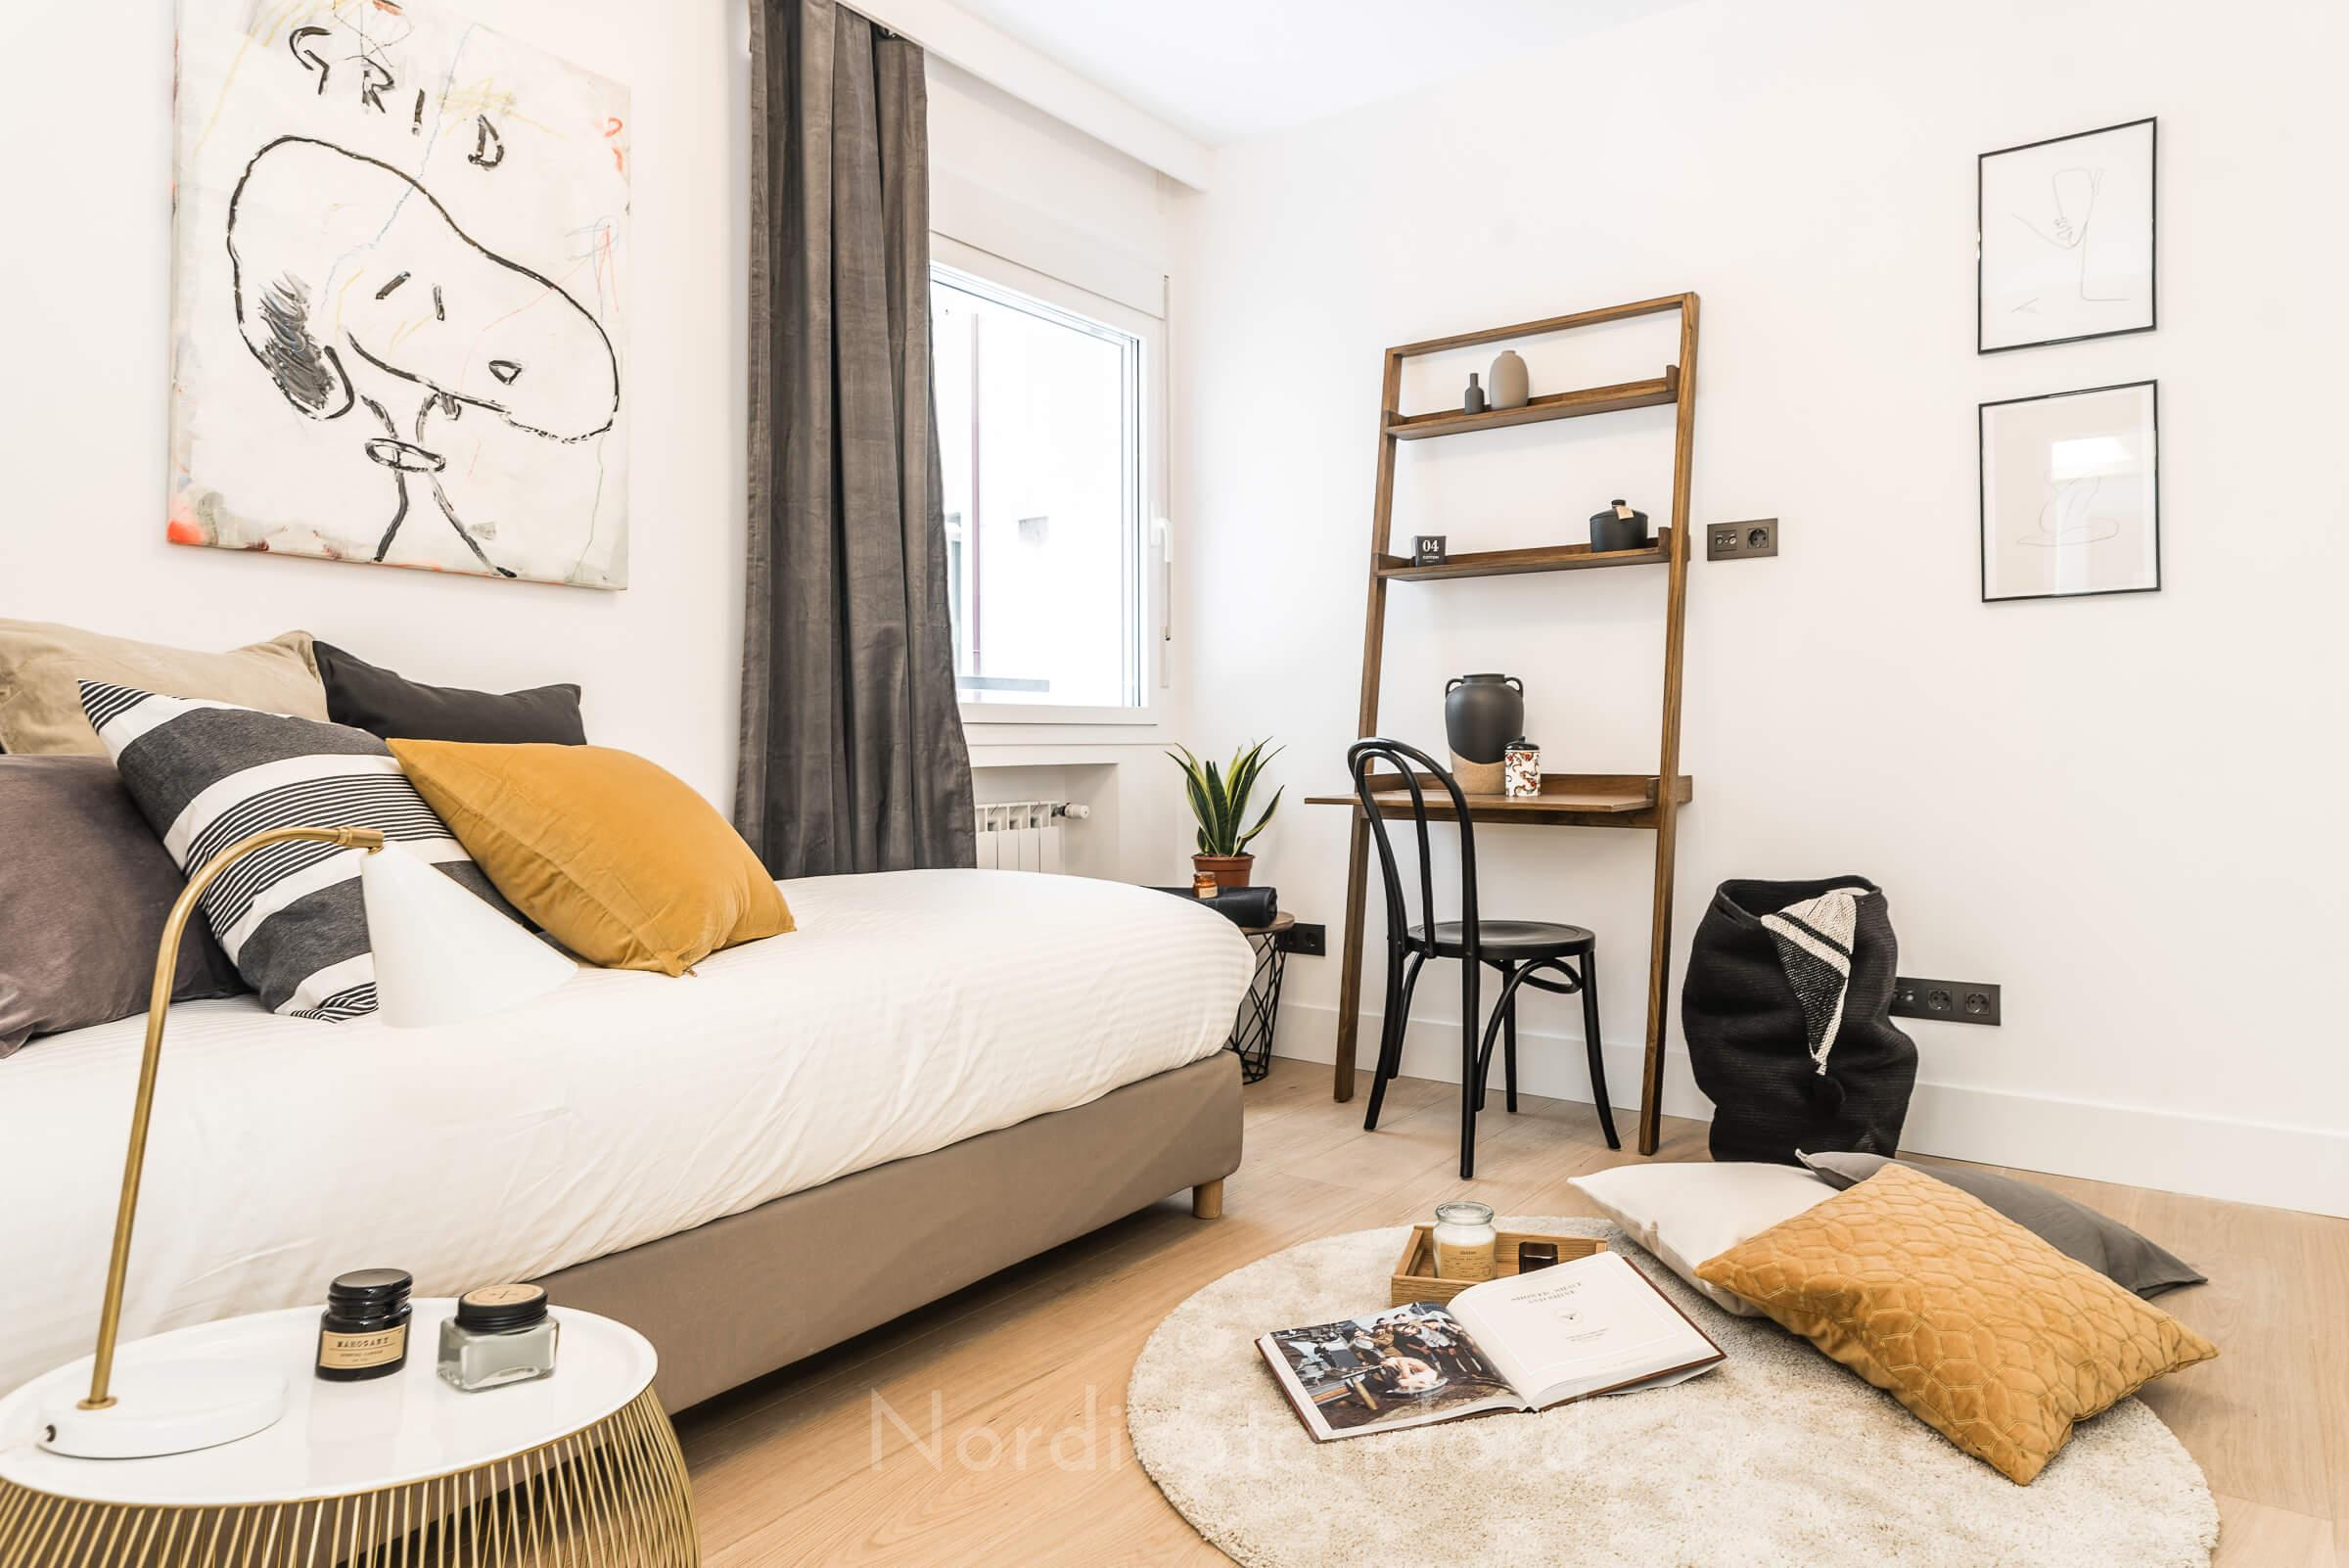 Stil contemporan cu influențe scandinave într-un apartament din Madrid 22